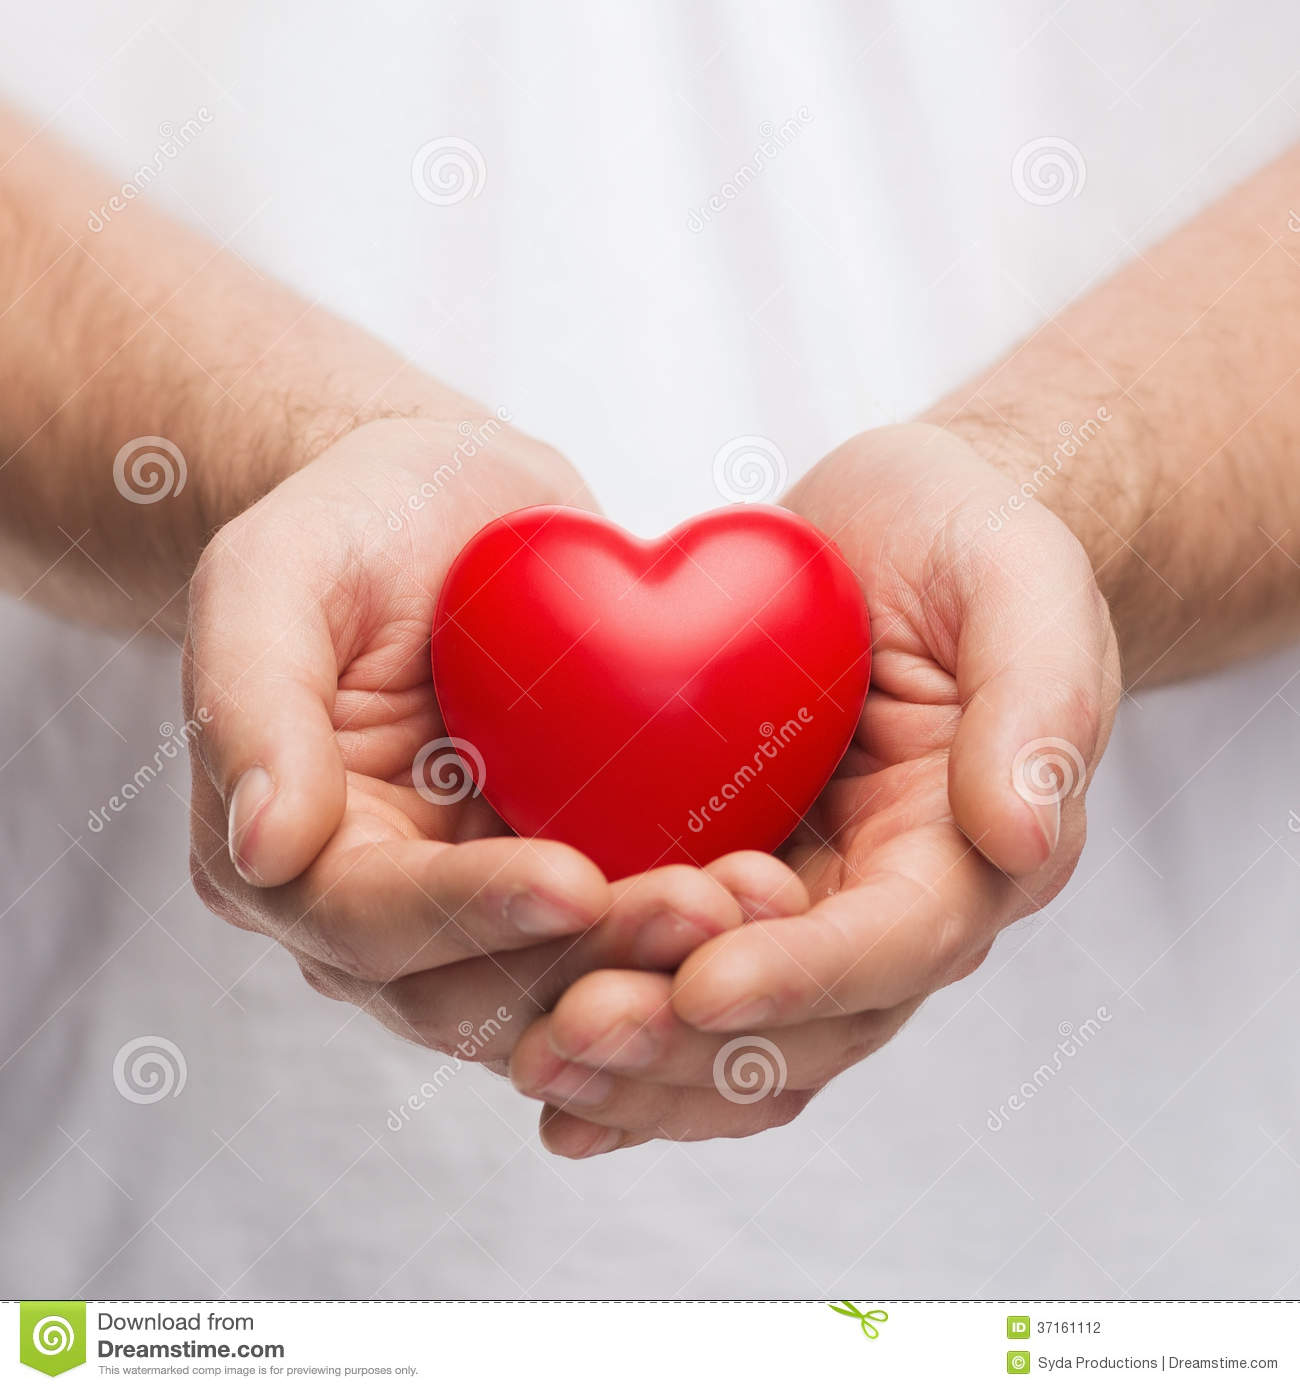 Pics Of Cupping: Mans Cupped Hands Showing Red Heart Stock Photo